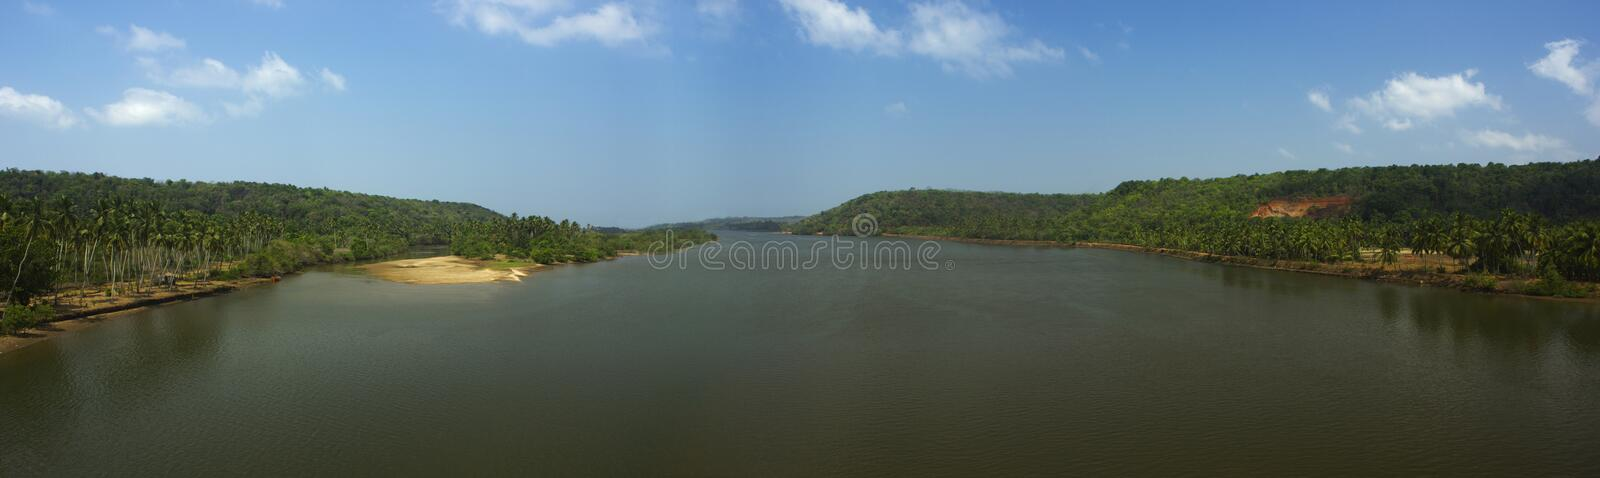 Download River Panorama stock photo. Image of trees, nature, blue - 39512196